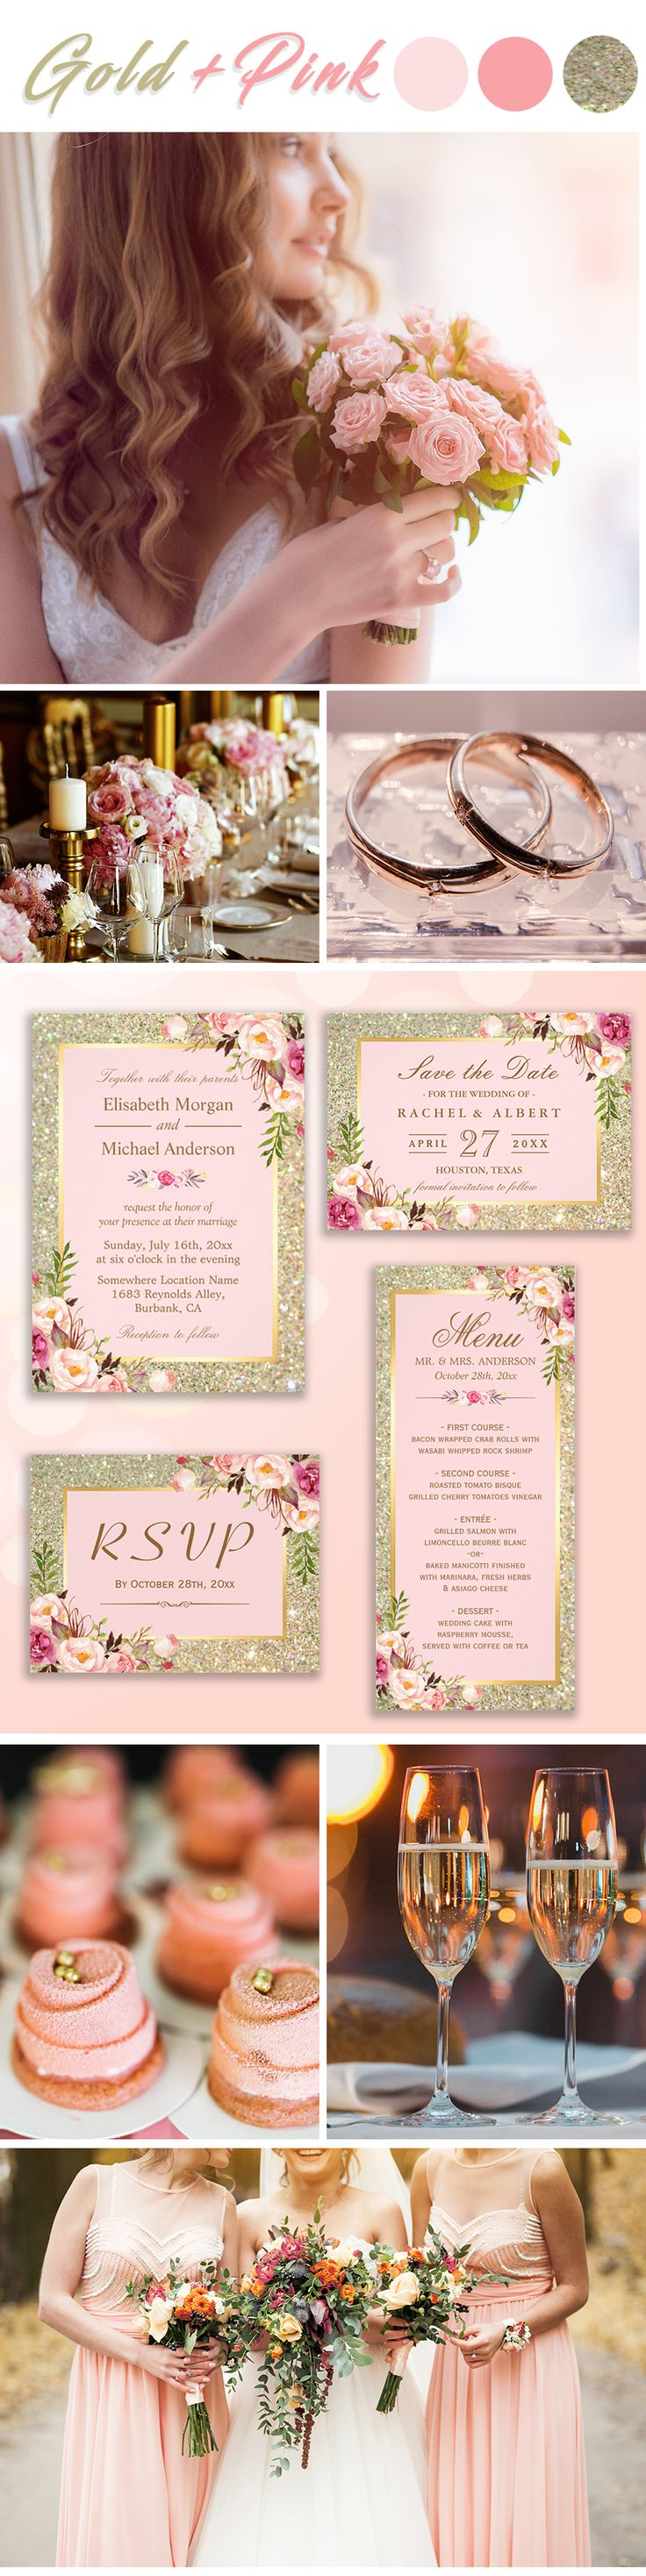 how to address couples on wedding invitations%0A A Gold Glitters Blush Pink Floral Invitation Suite  with items from  invitation to RSVP card